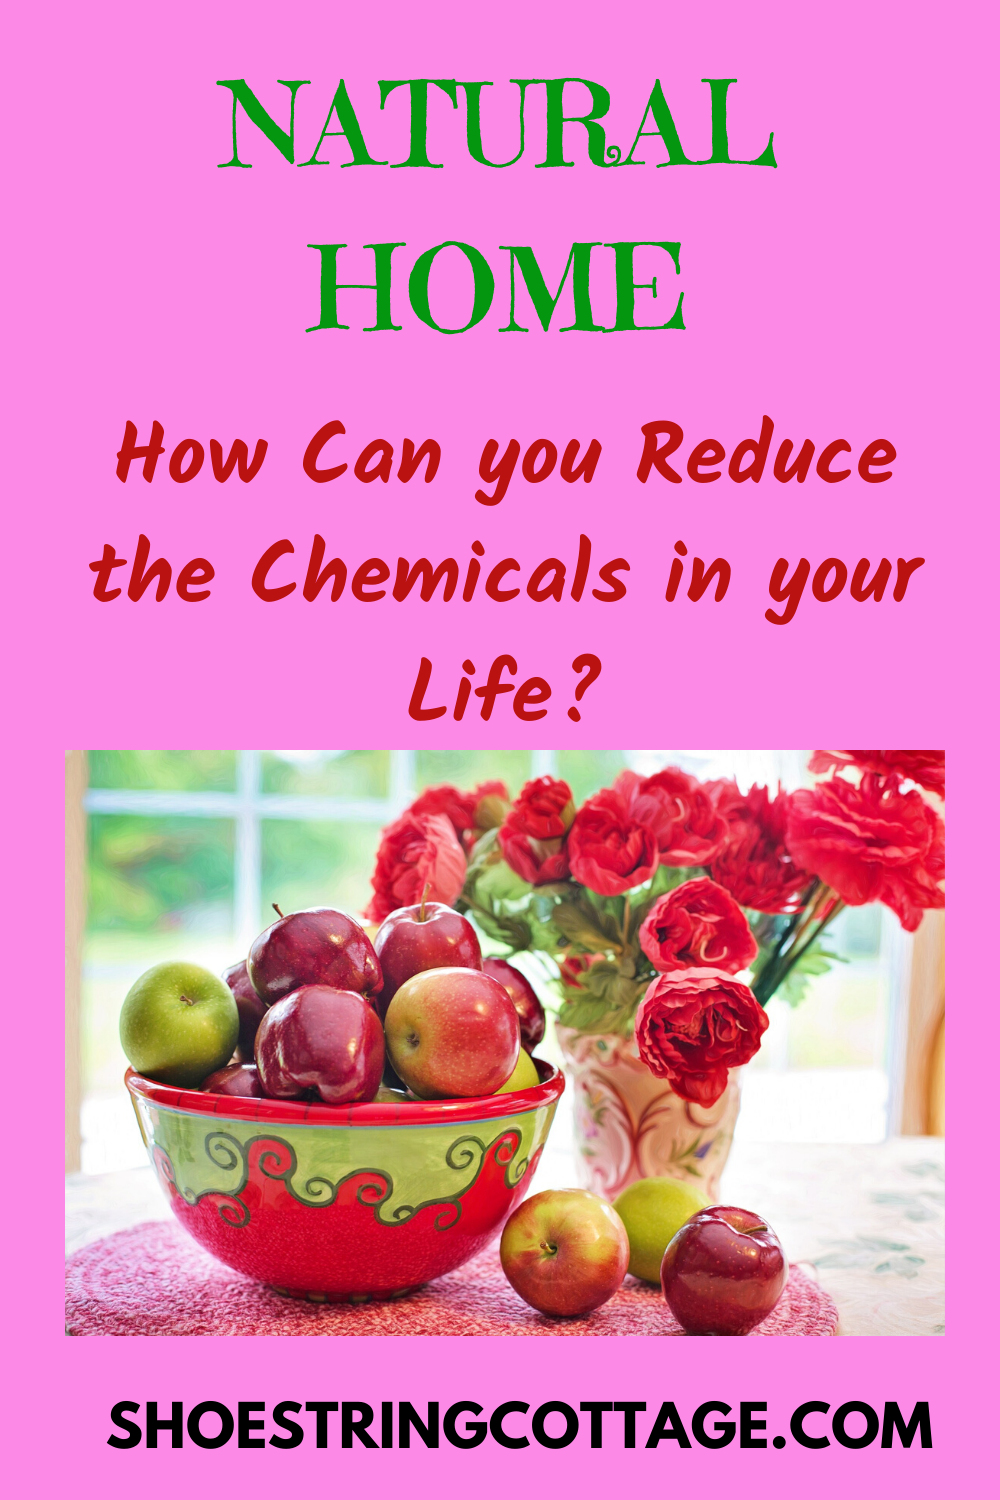 REDUCE THE CHEMICALS IN YOUR HOME